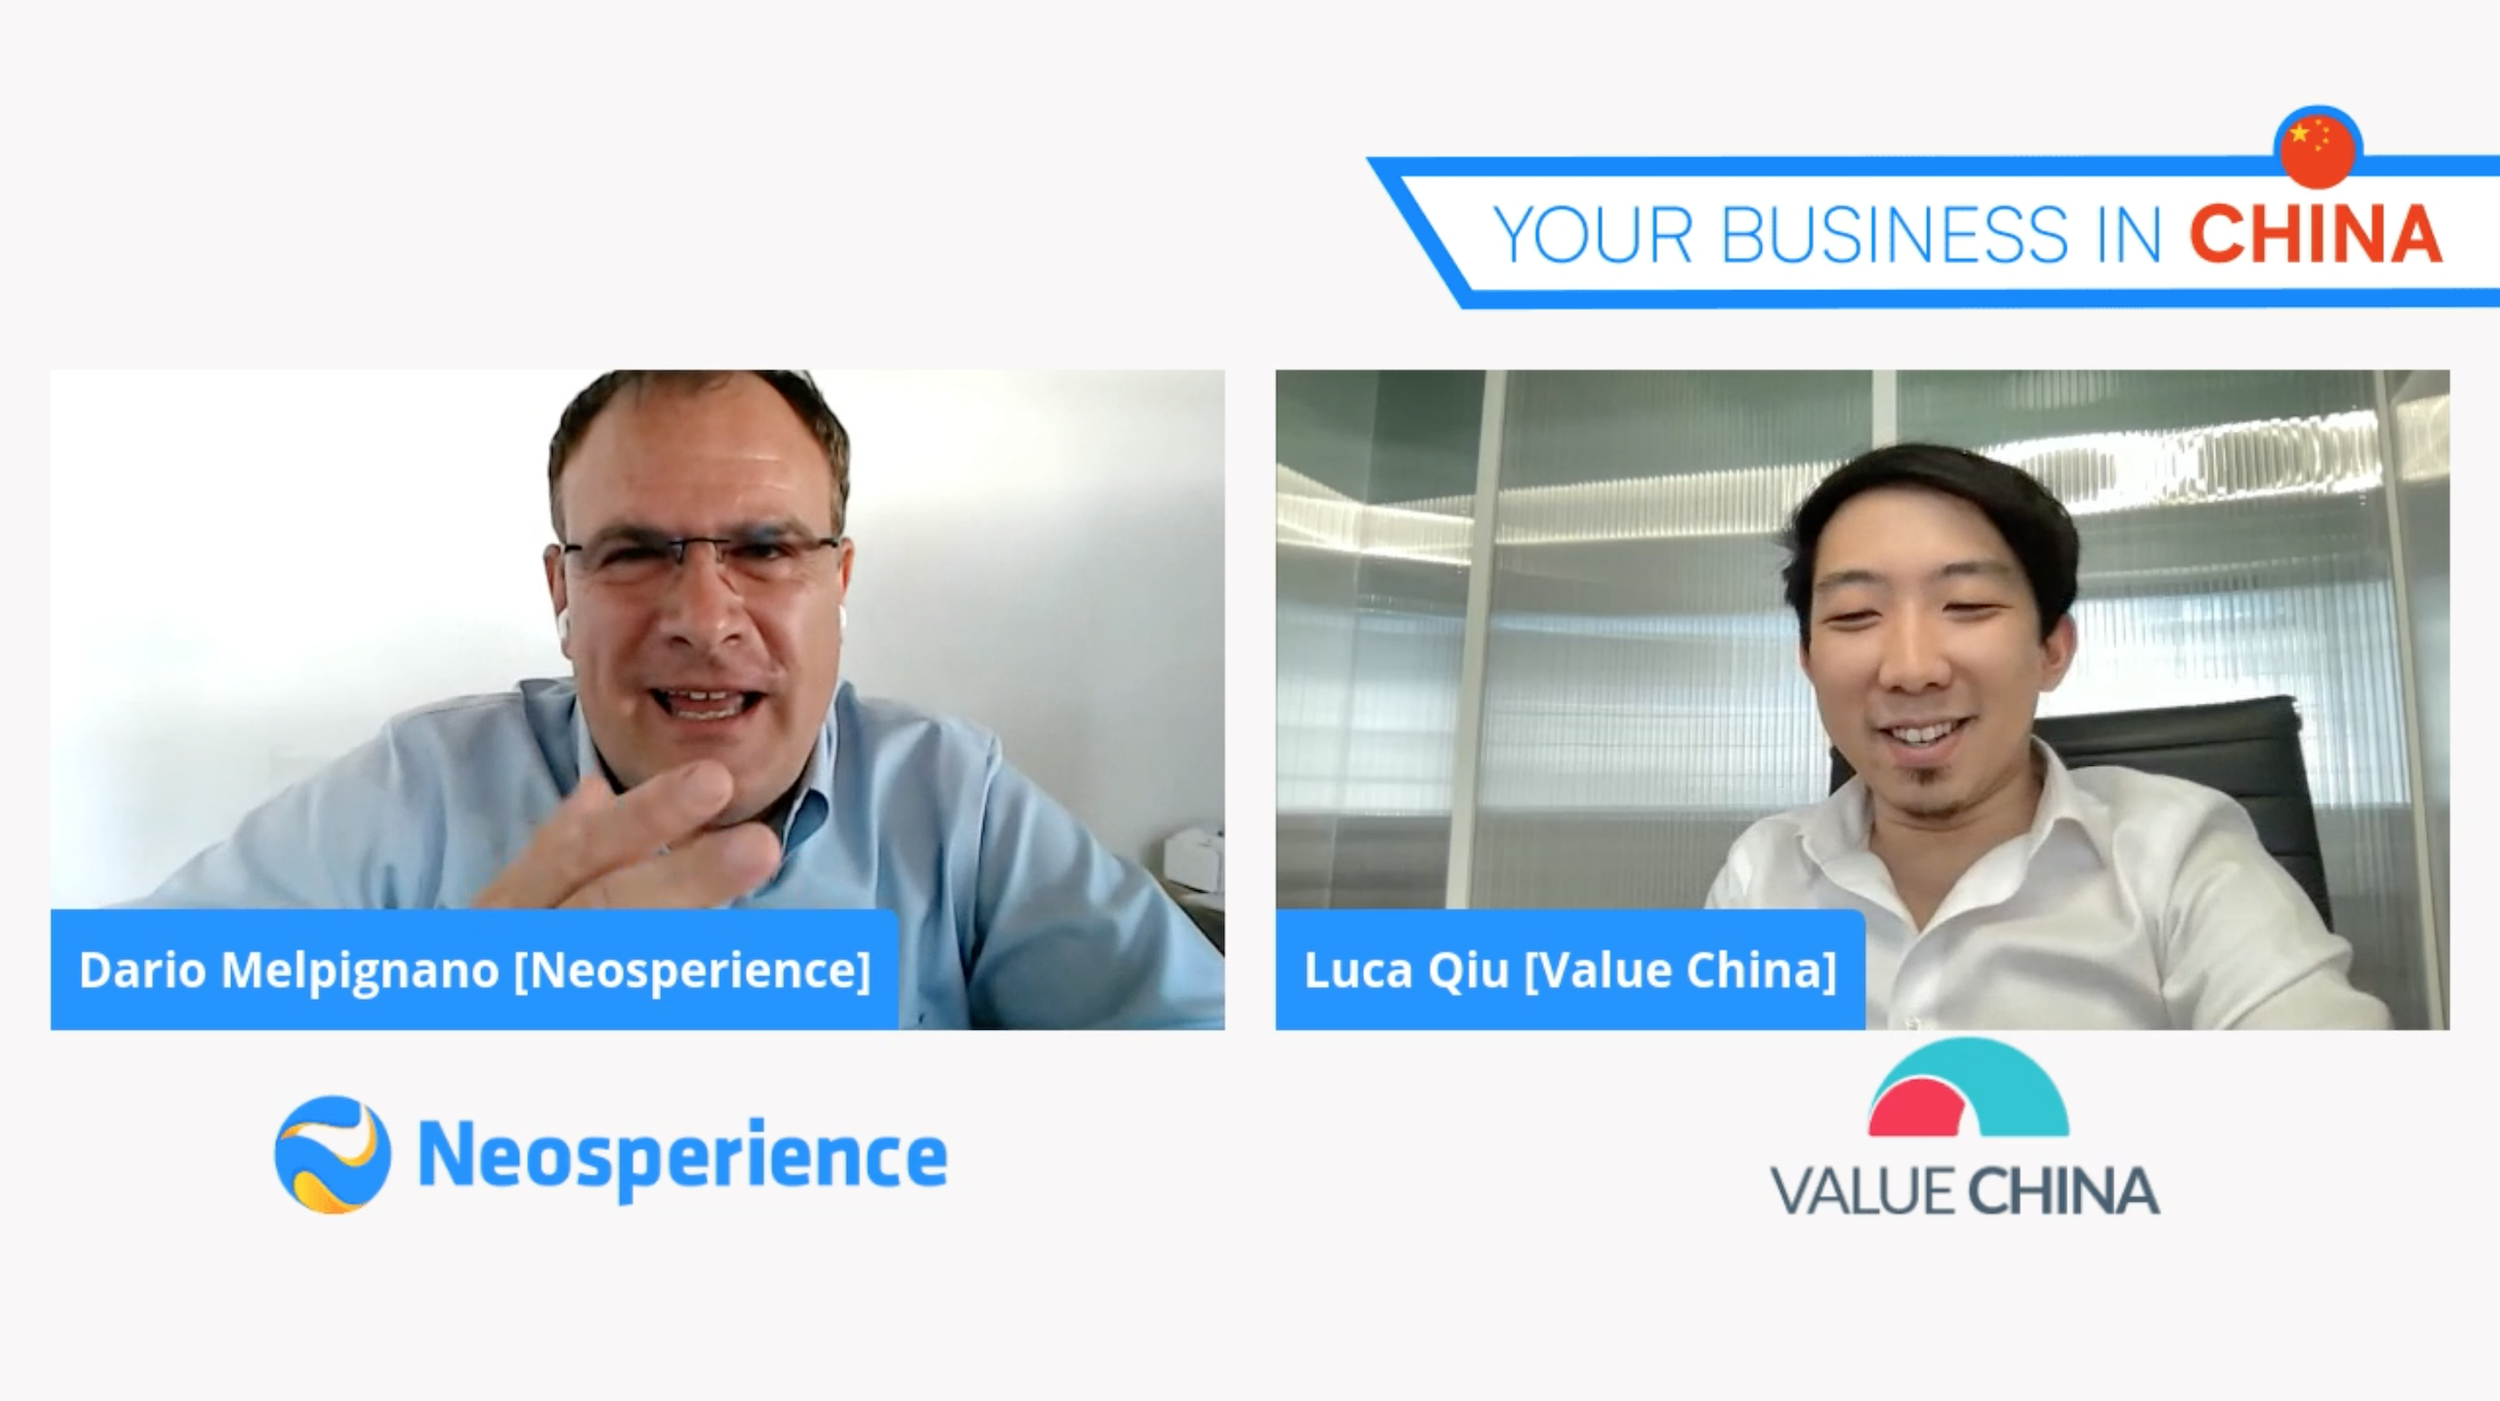 Ep 11 Your Business in China